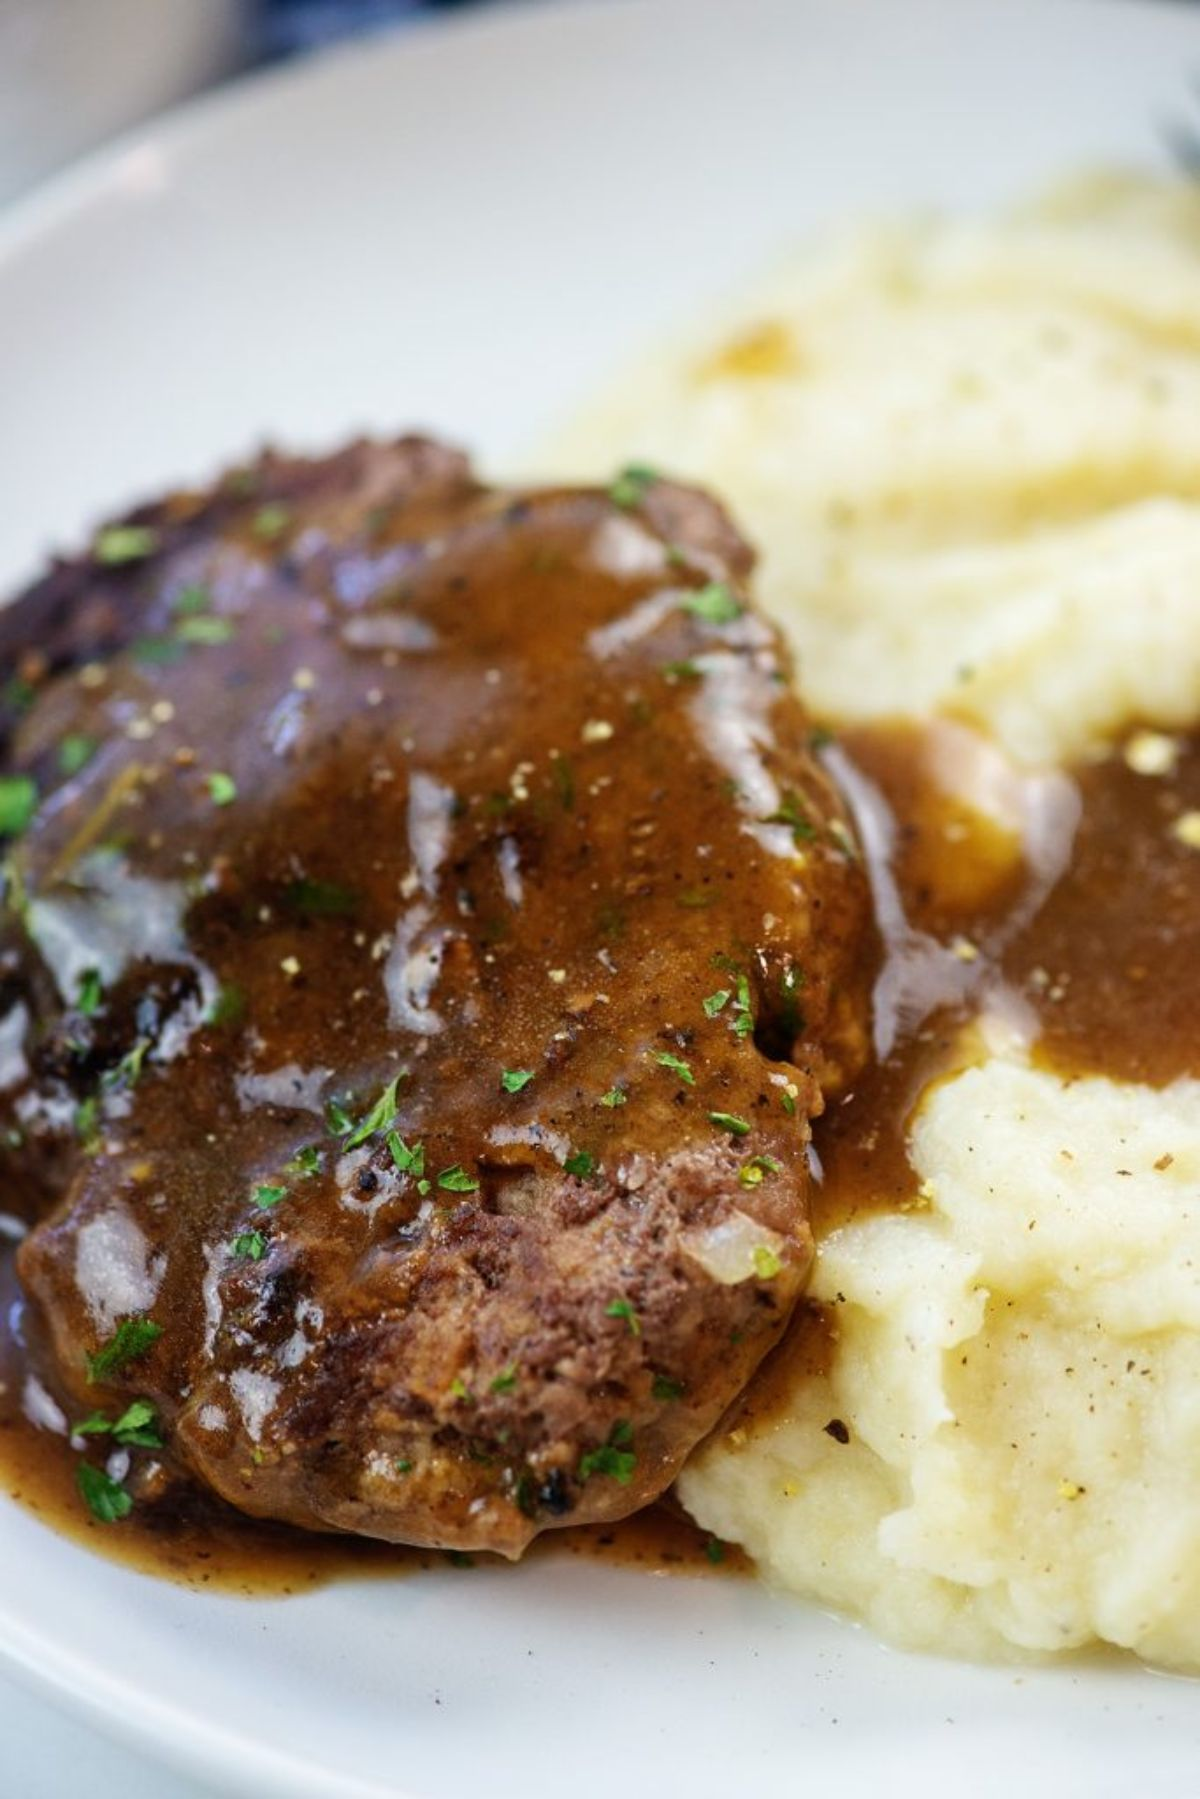 A partial close up of a steak in gravy, and mashed potato